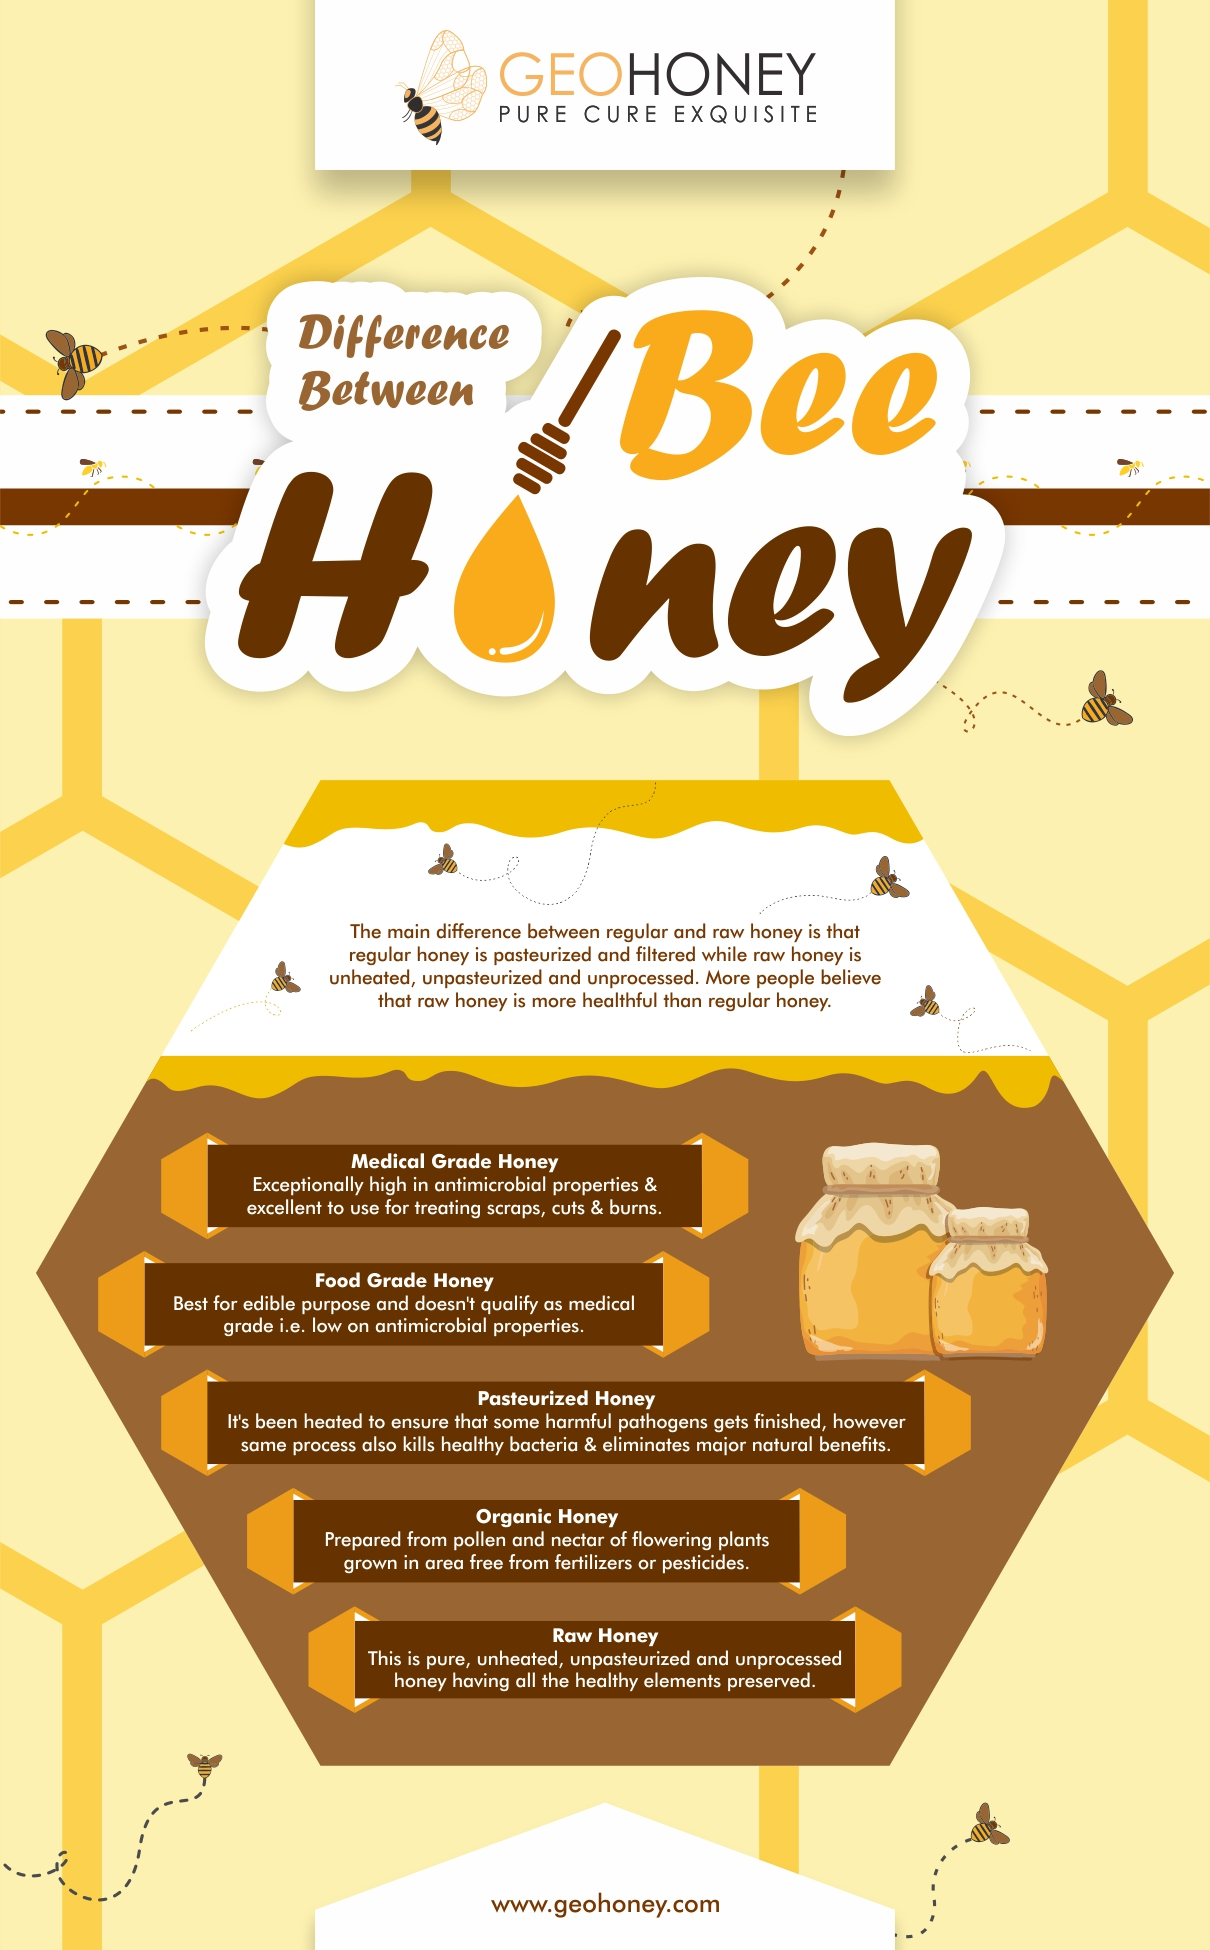 Difference between bee honey - Geohoney